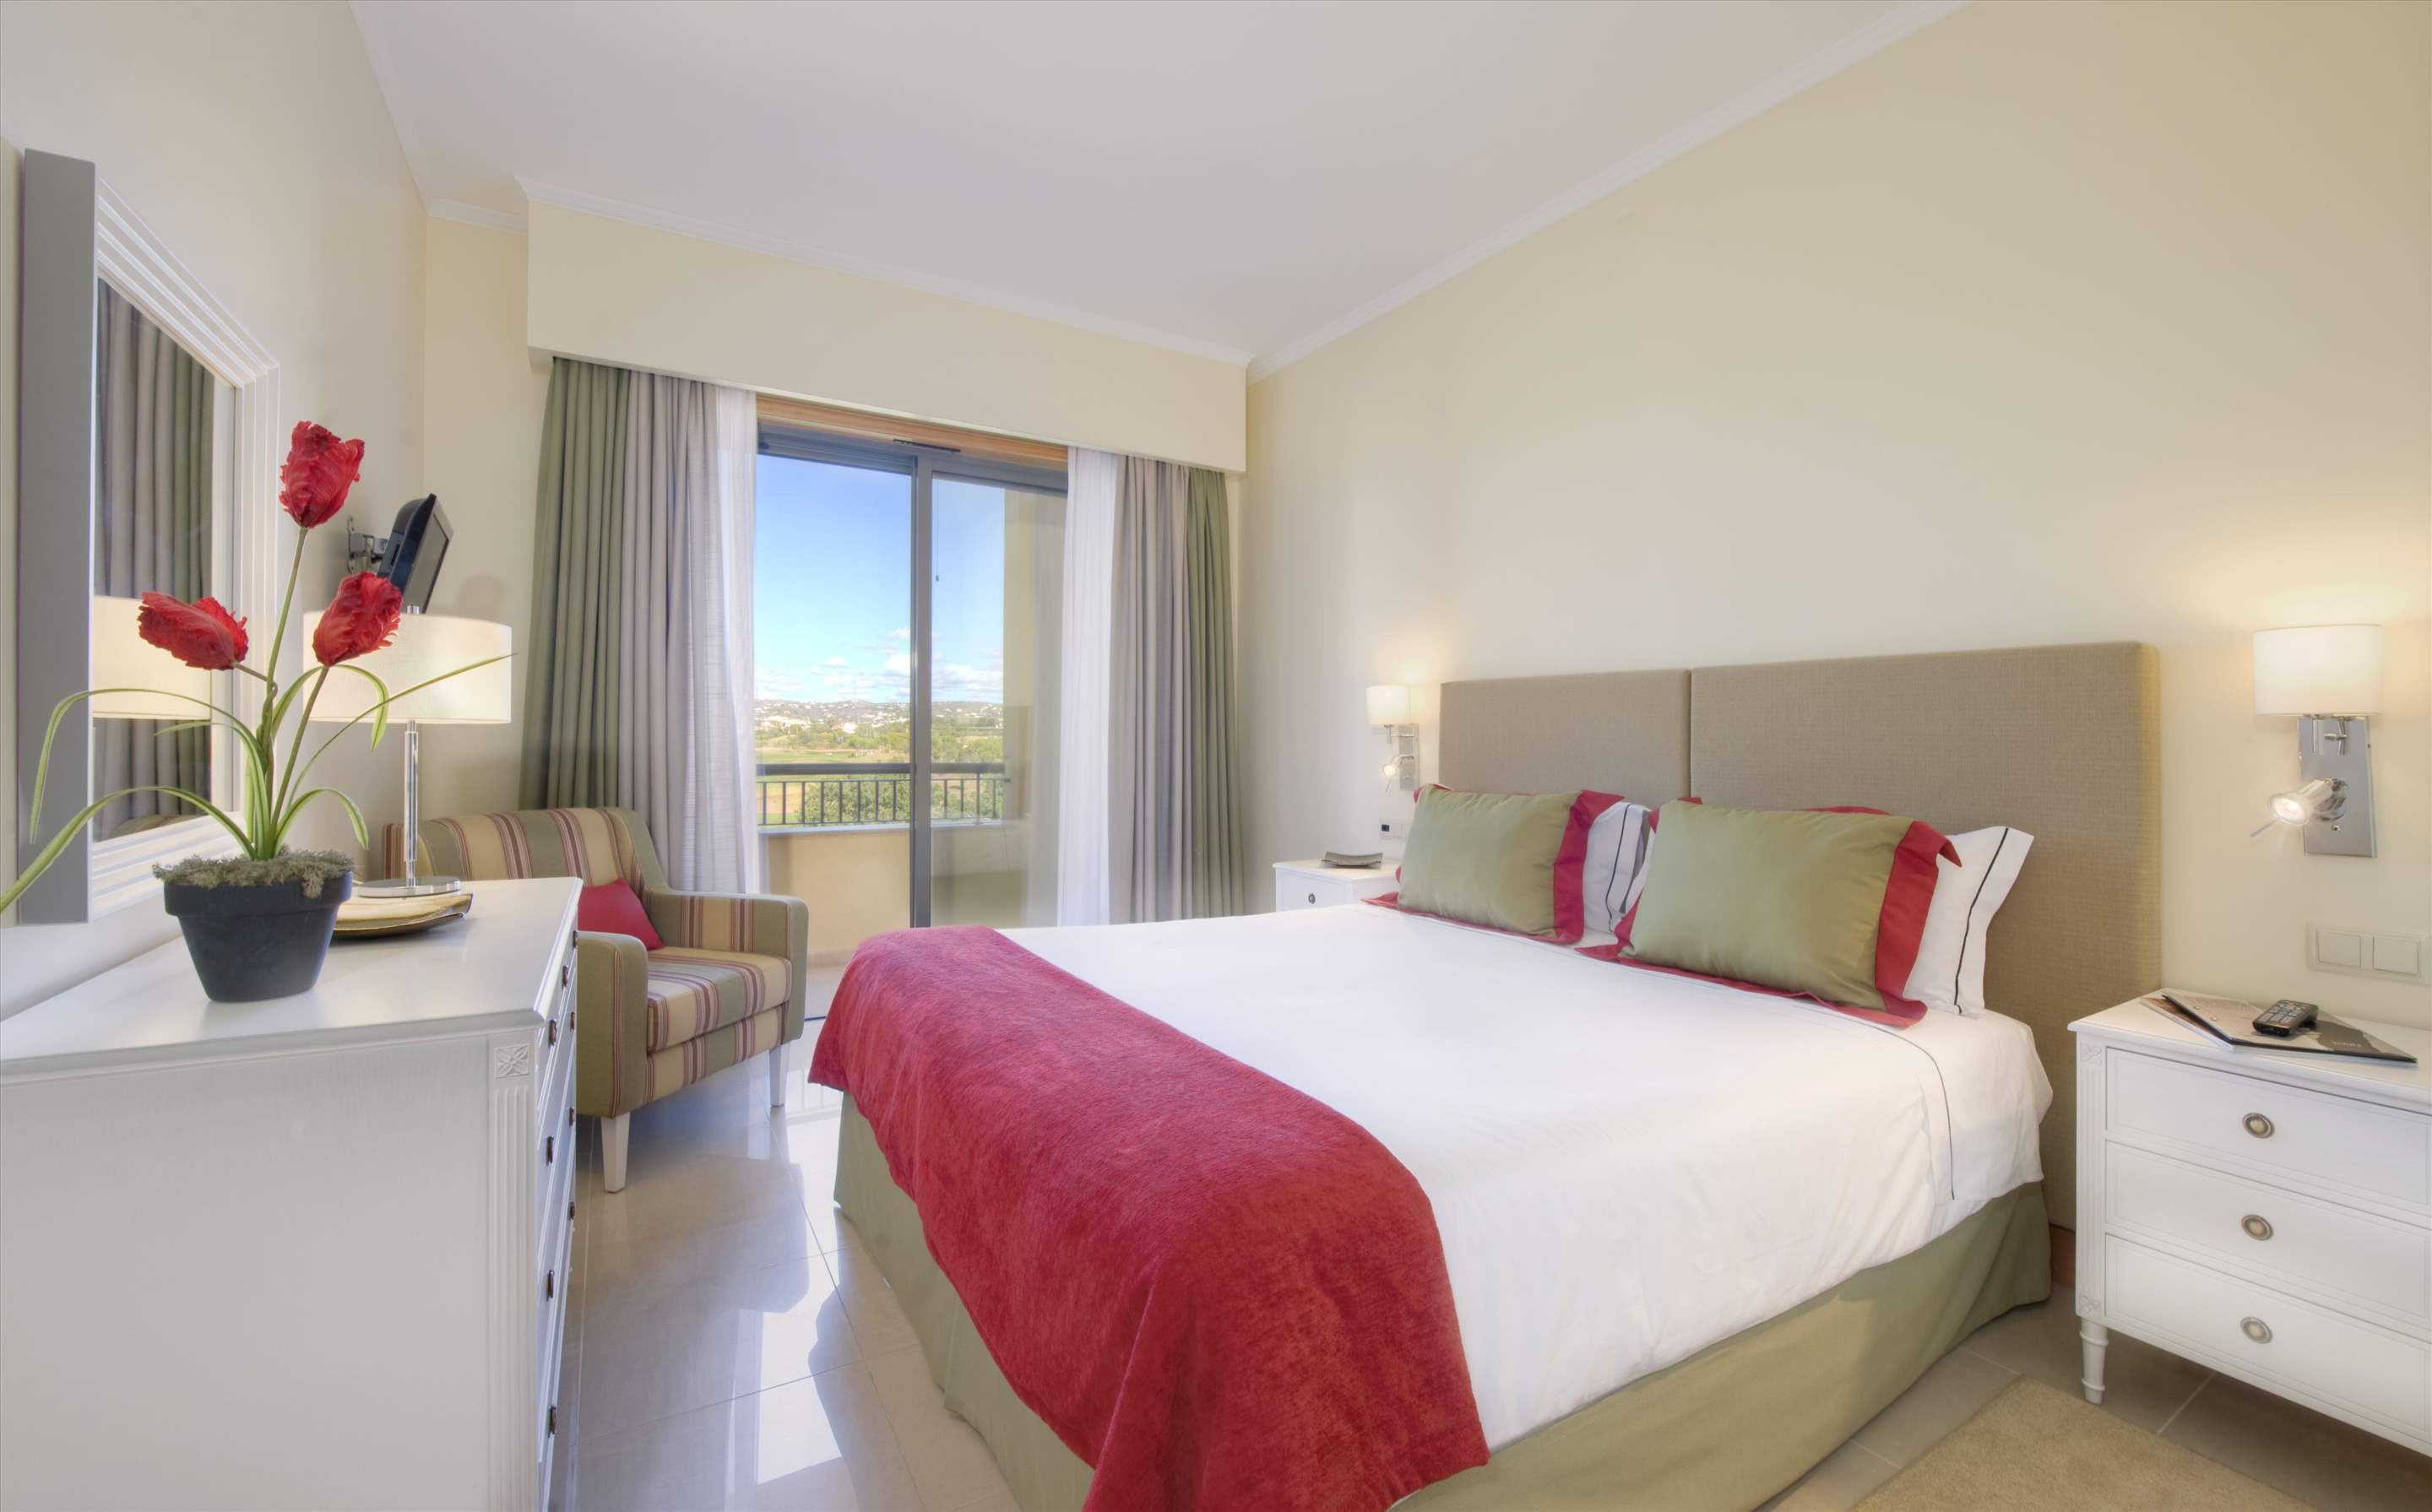 The Residences at Victoria by TIVOLI 3 Bed Apt , Deluxe, Golf or Pool View, 3 bedroom apartment in The Residences at Victoria by TIVOLI, Algarve Photo #5